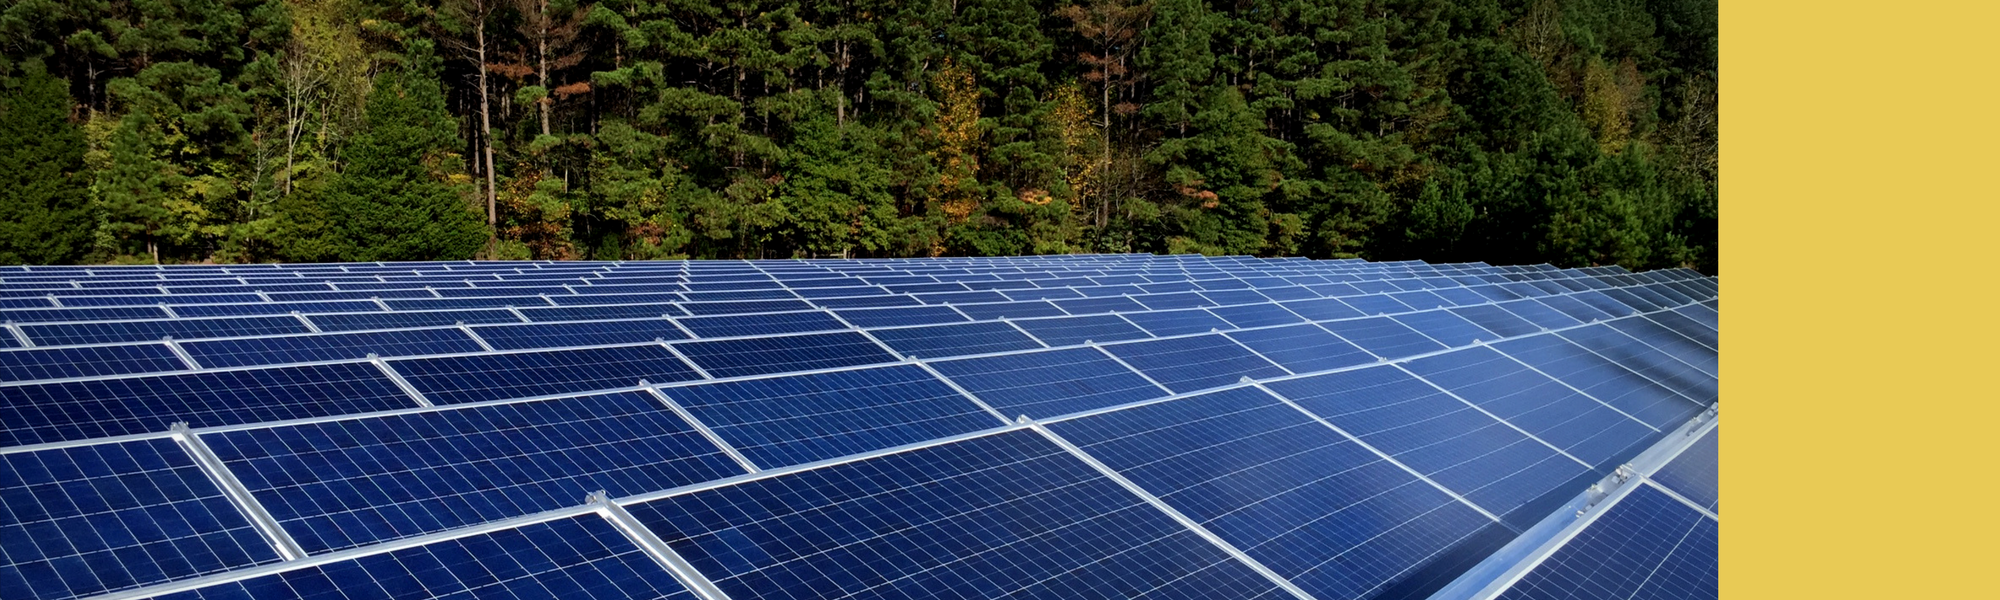 100 KW Solar Garden Located at Ouachita Electric Cooperative in Camden, Arkansas.